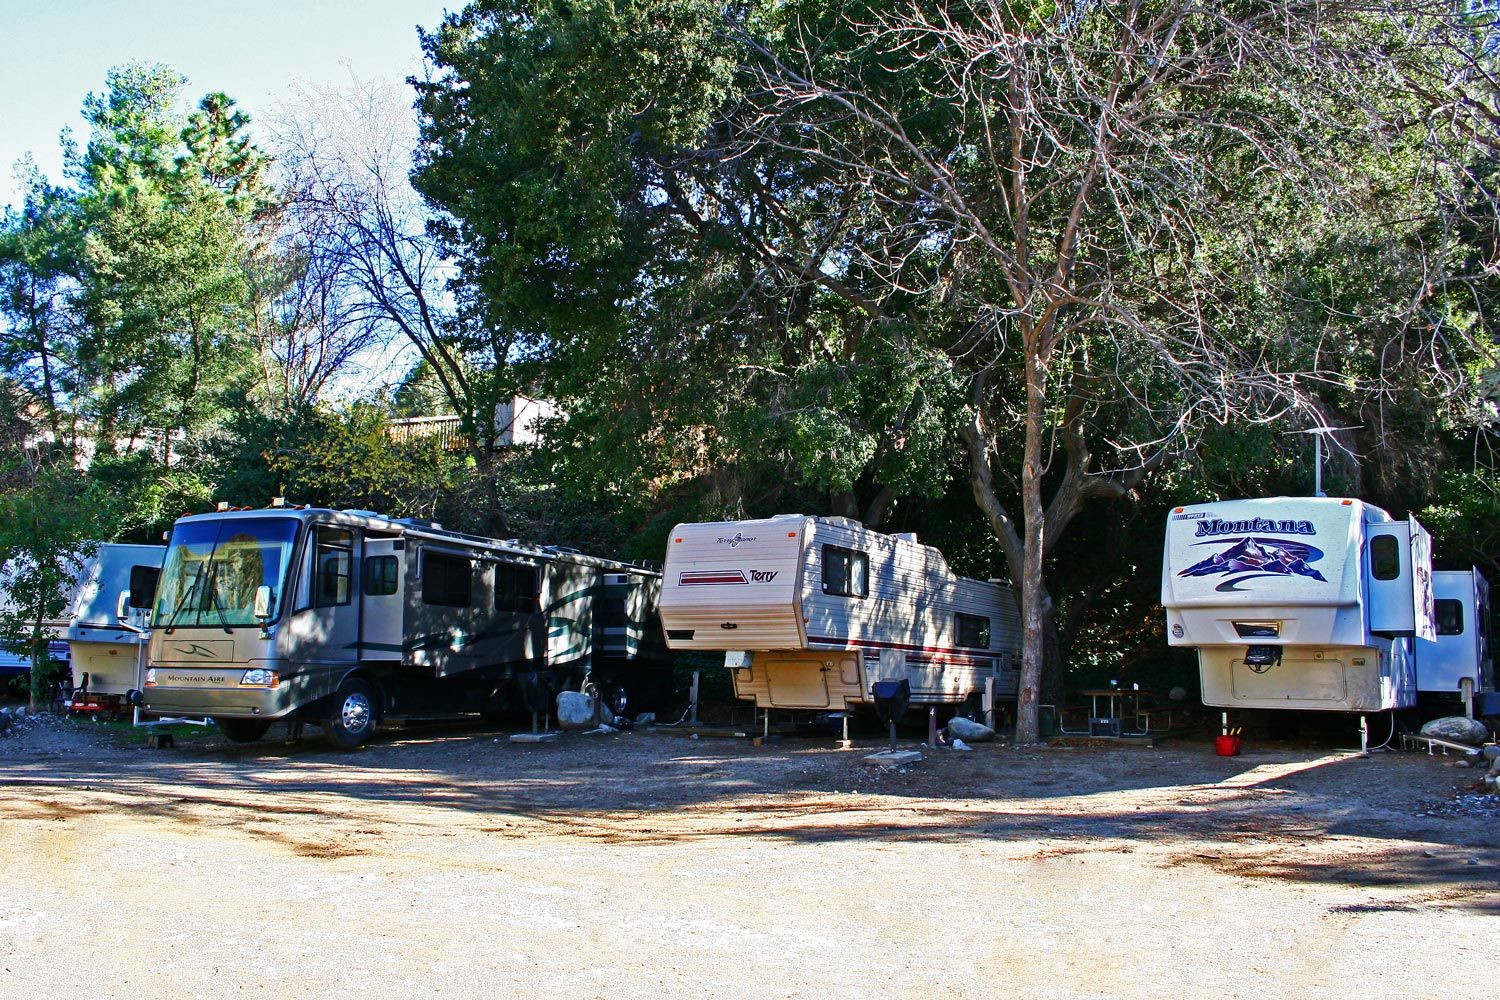 We have a spot for your RV at Camp Williams RV Resort.